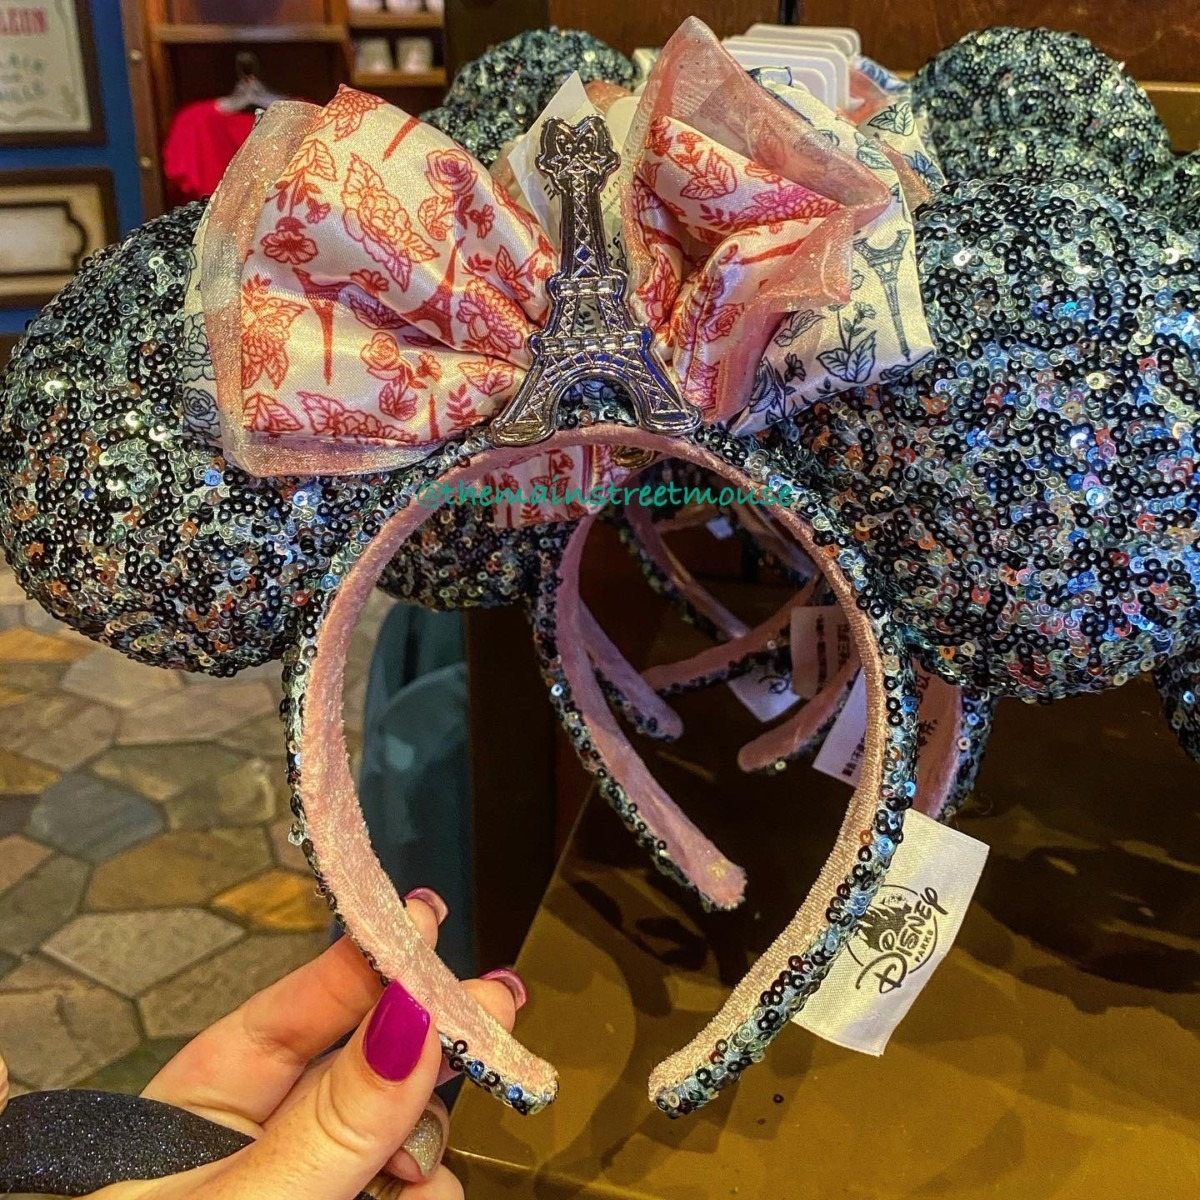 New Minnie Ear Headbands at Epcot! #disneystyle 2